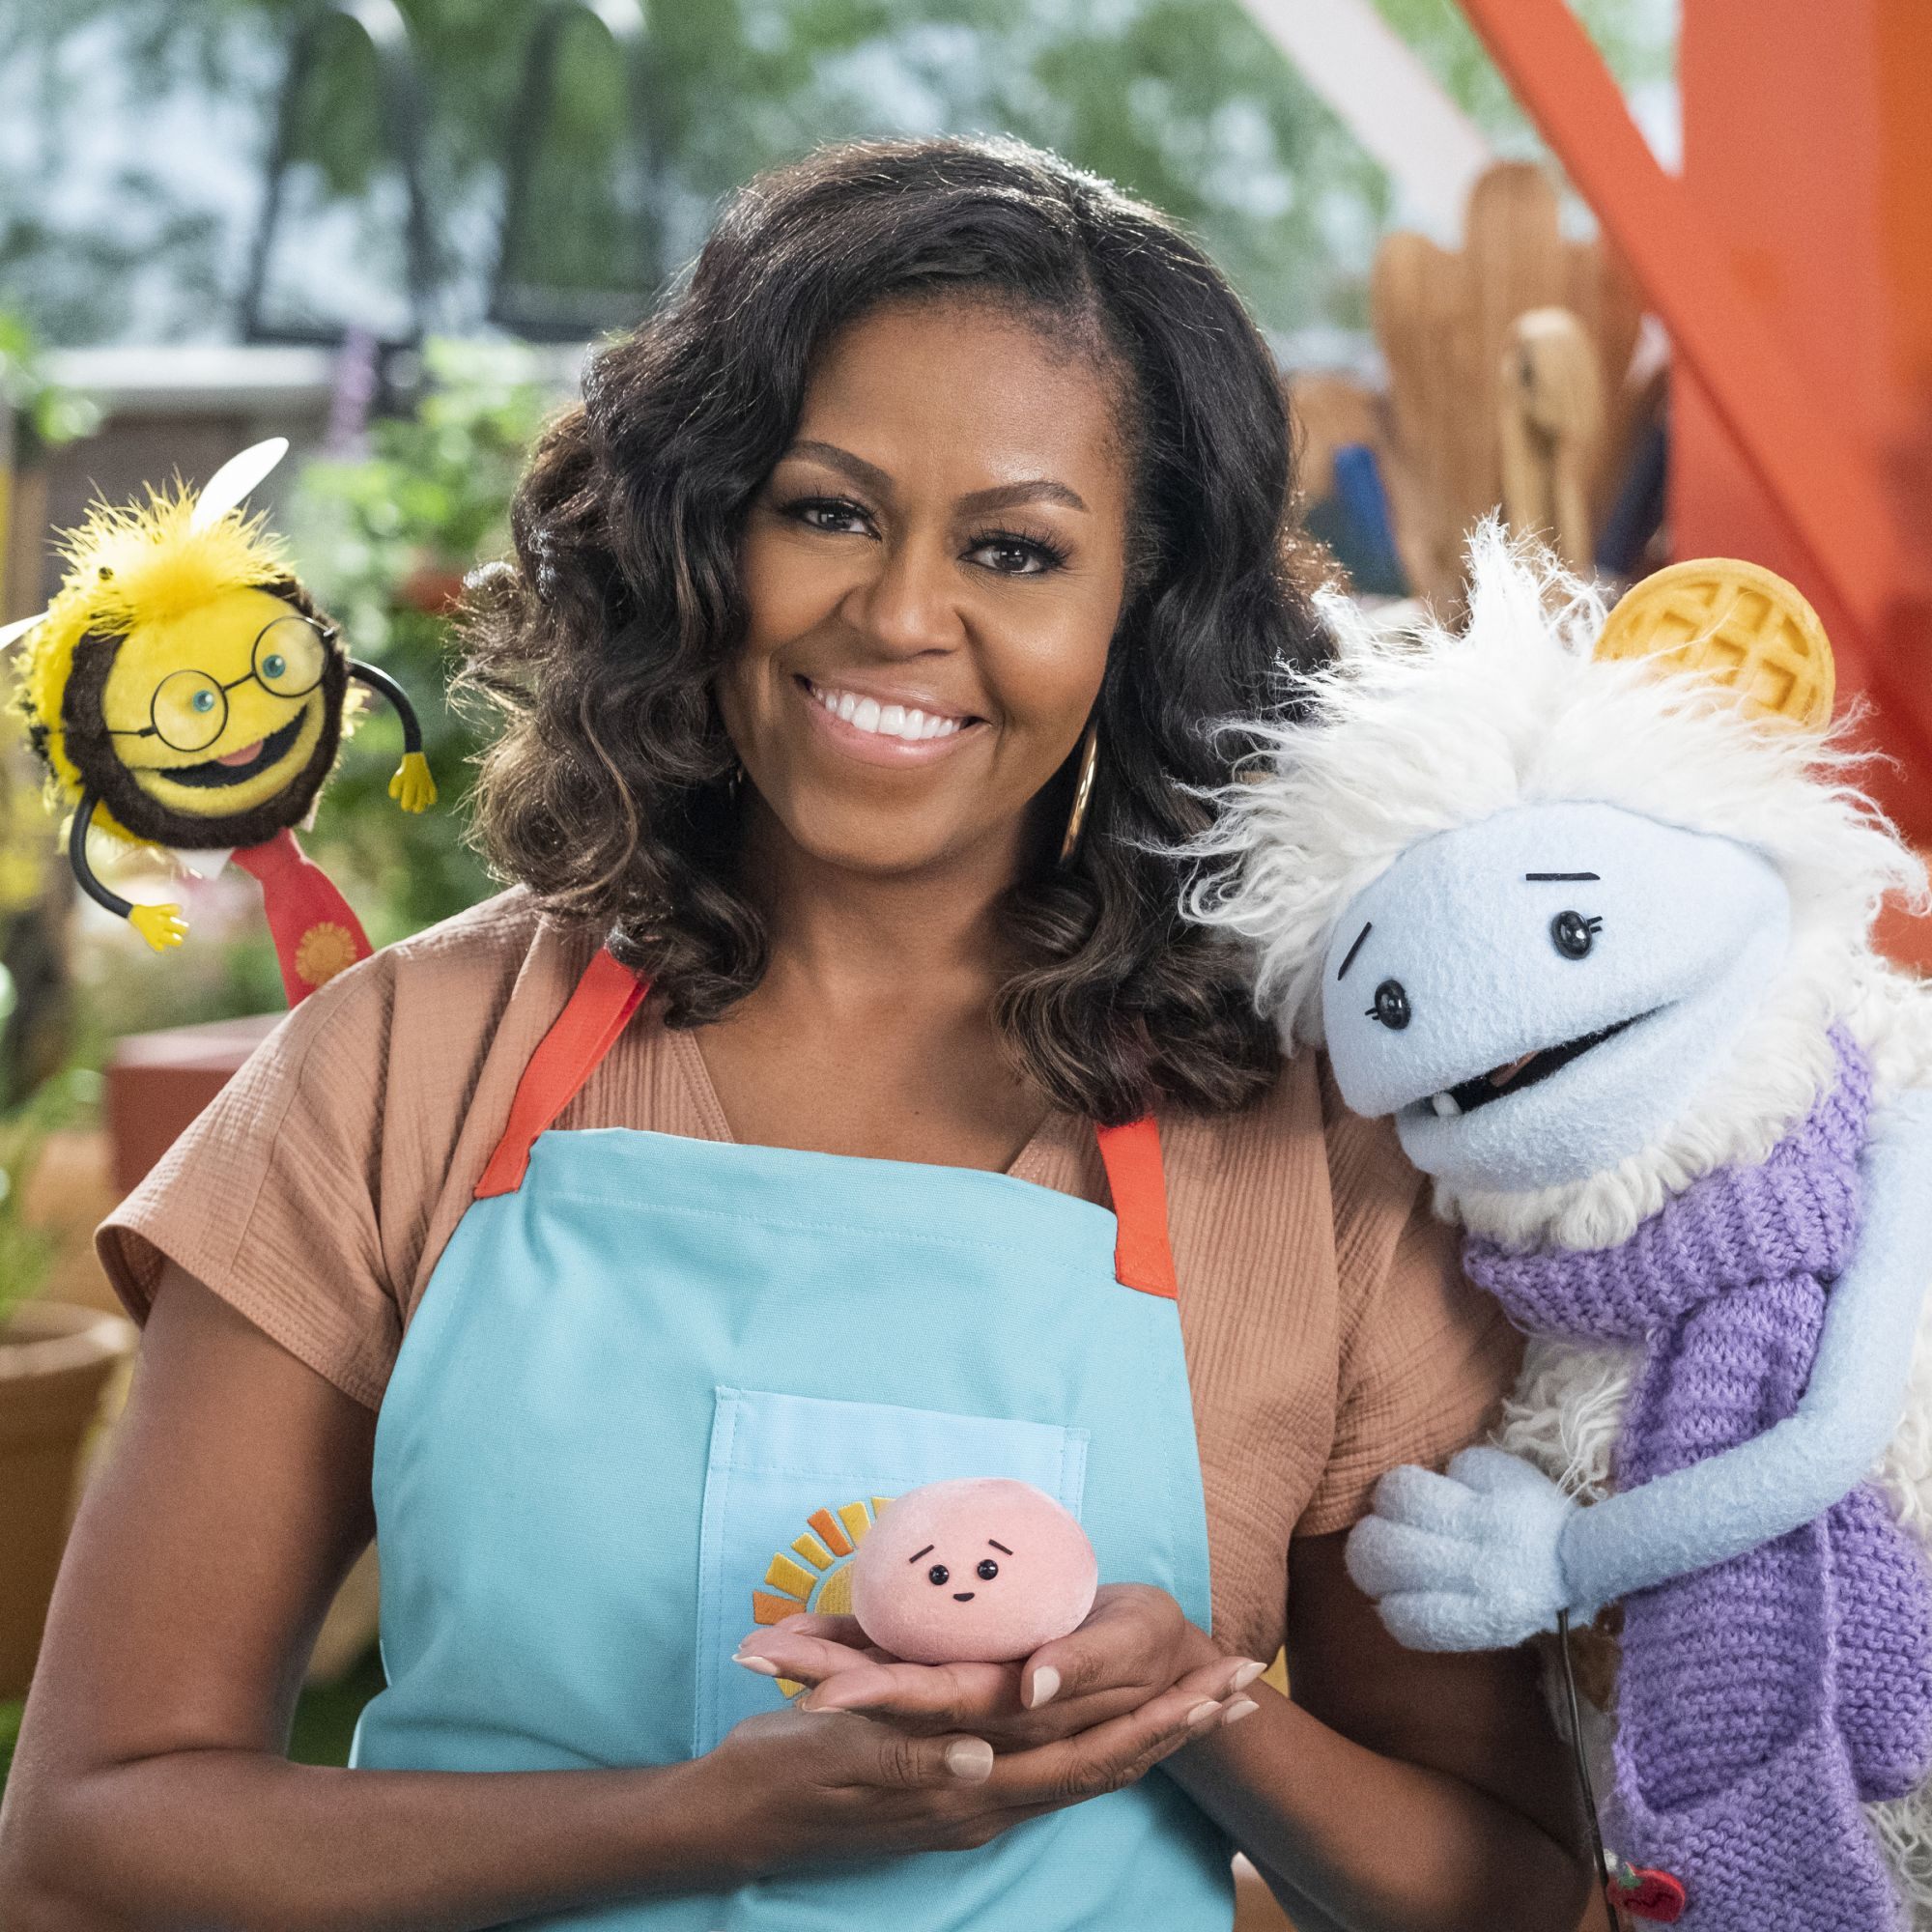 Michelle Obama To Star in New Netflix Show, Waffles + Mochi